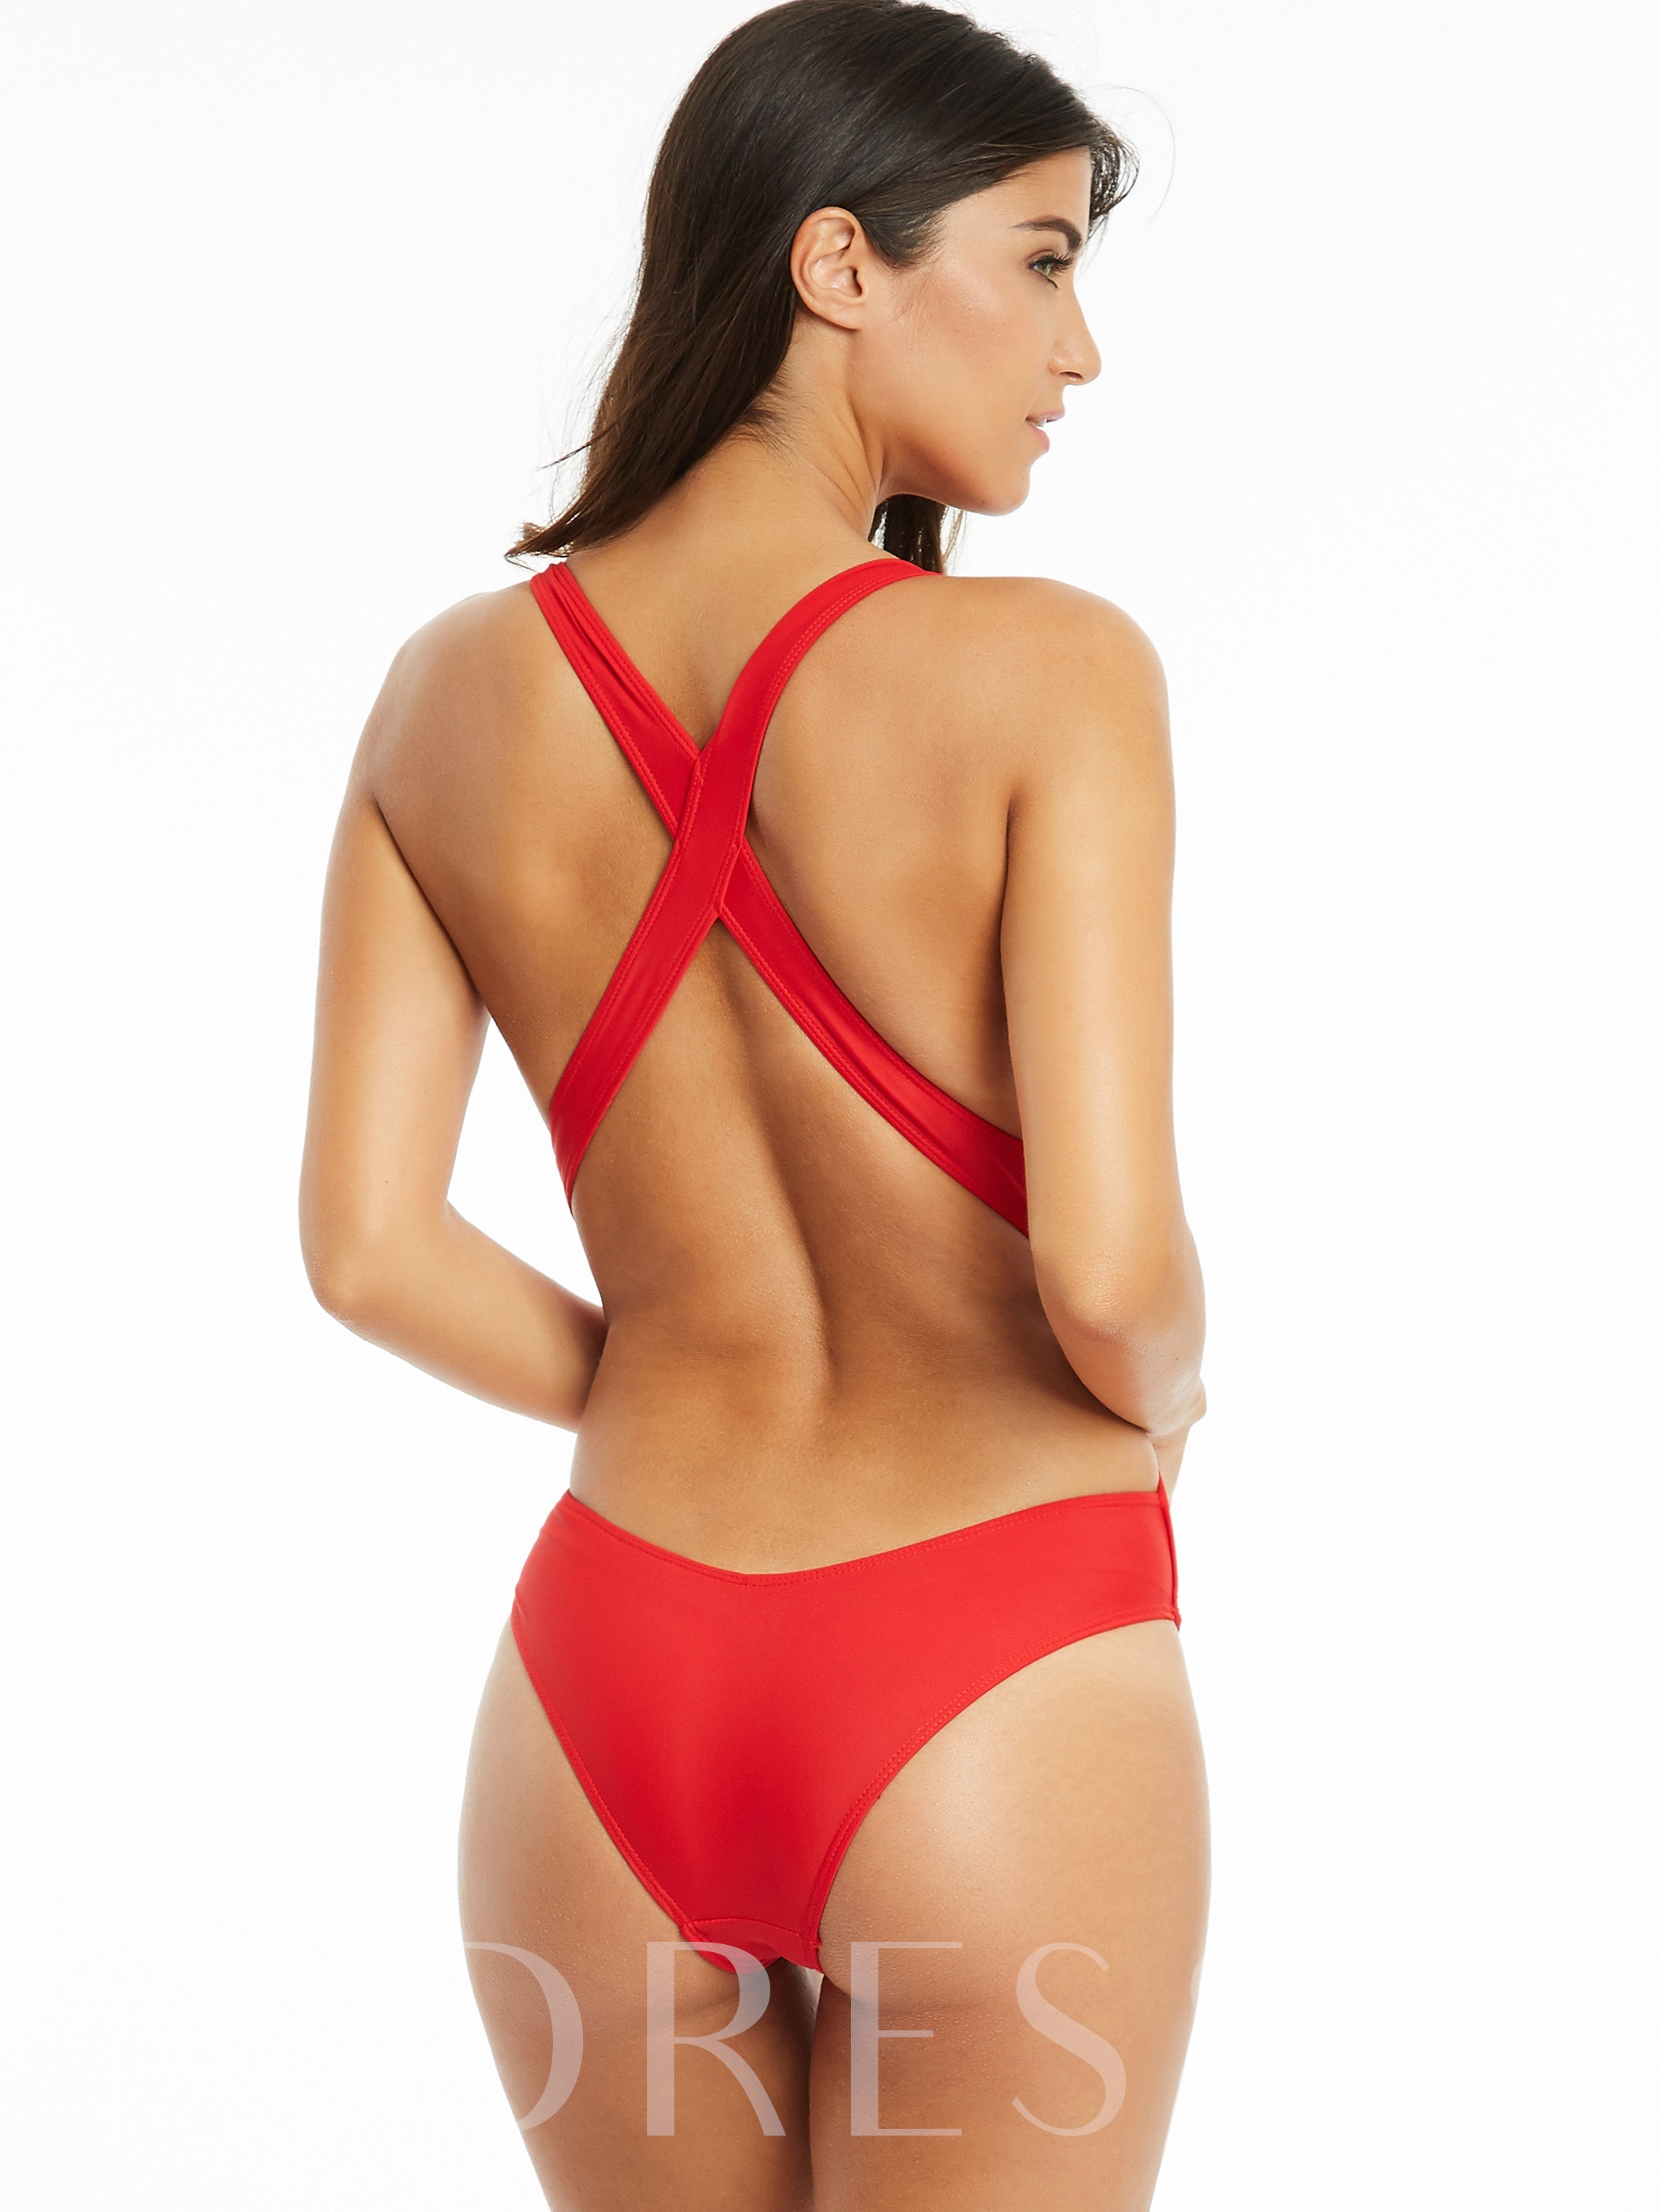 Fashionable Cross Strap One-Piece Swimsuit